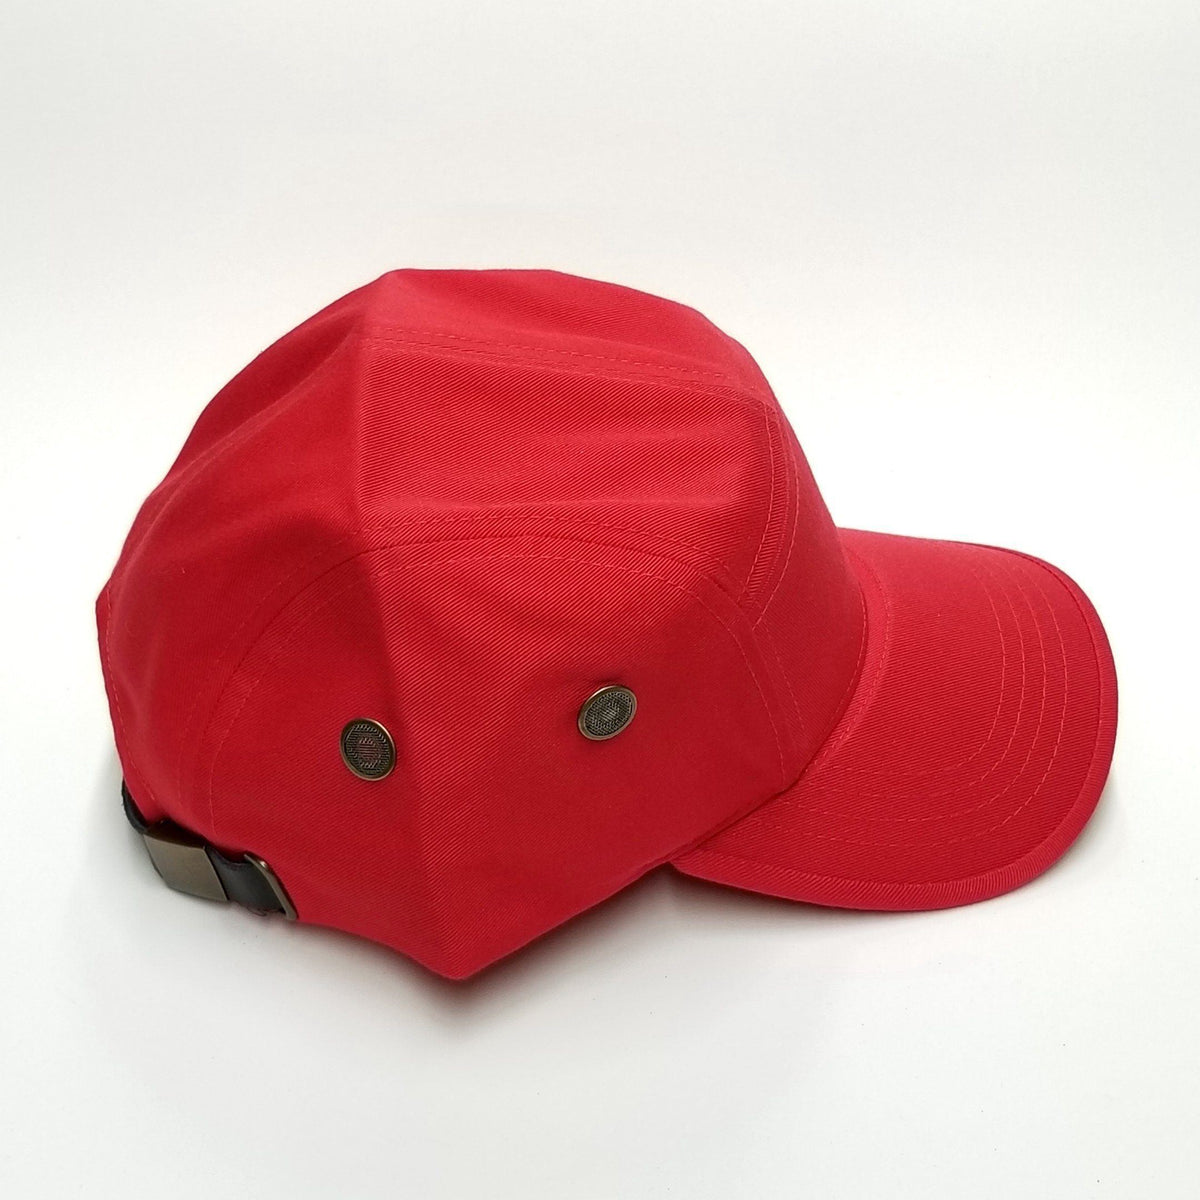 Button Cadet Army Cap #KBK1455 (Assorted Colors)